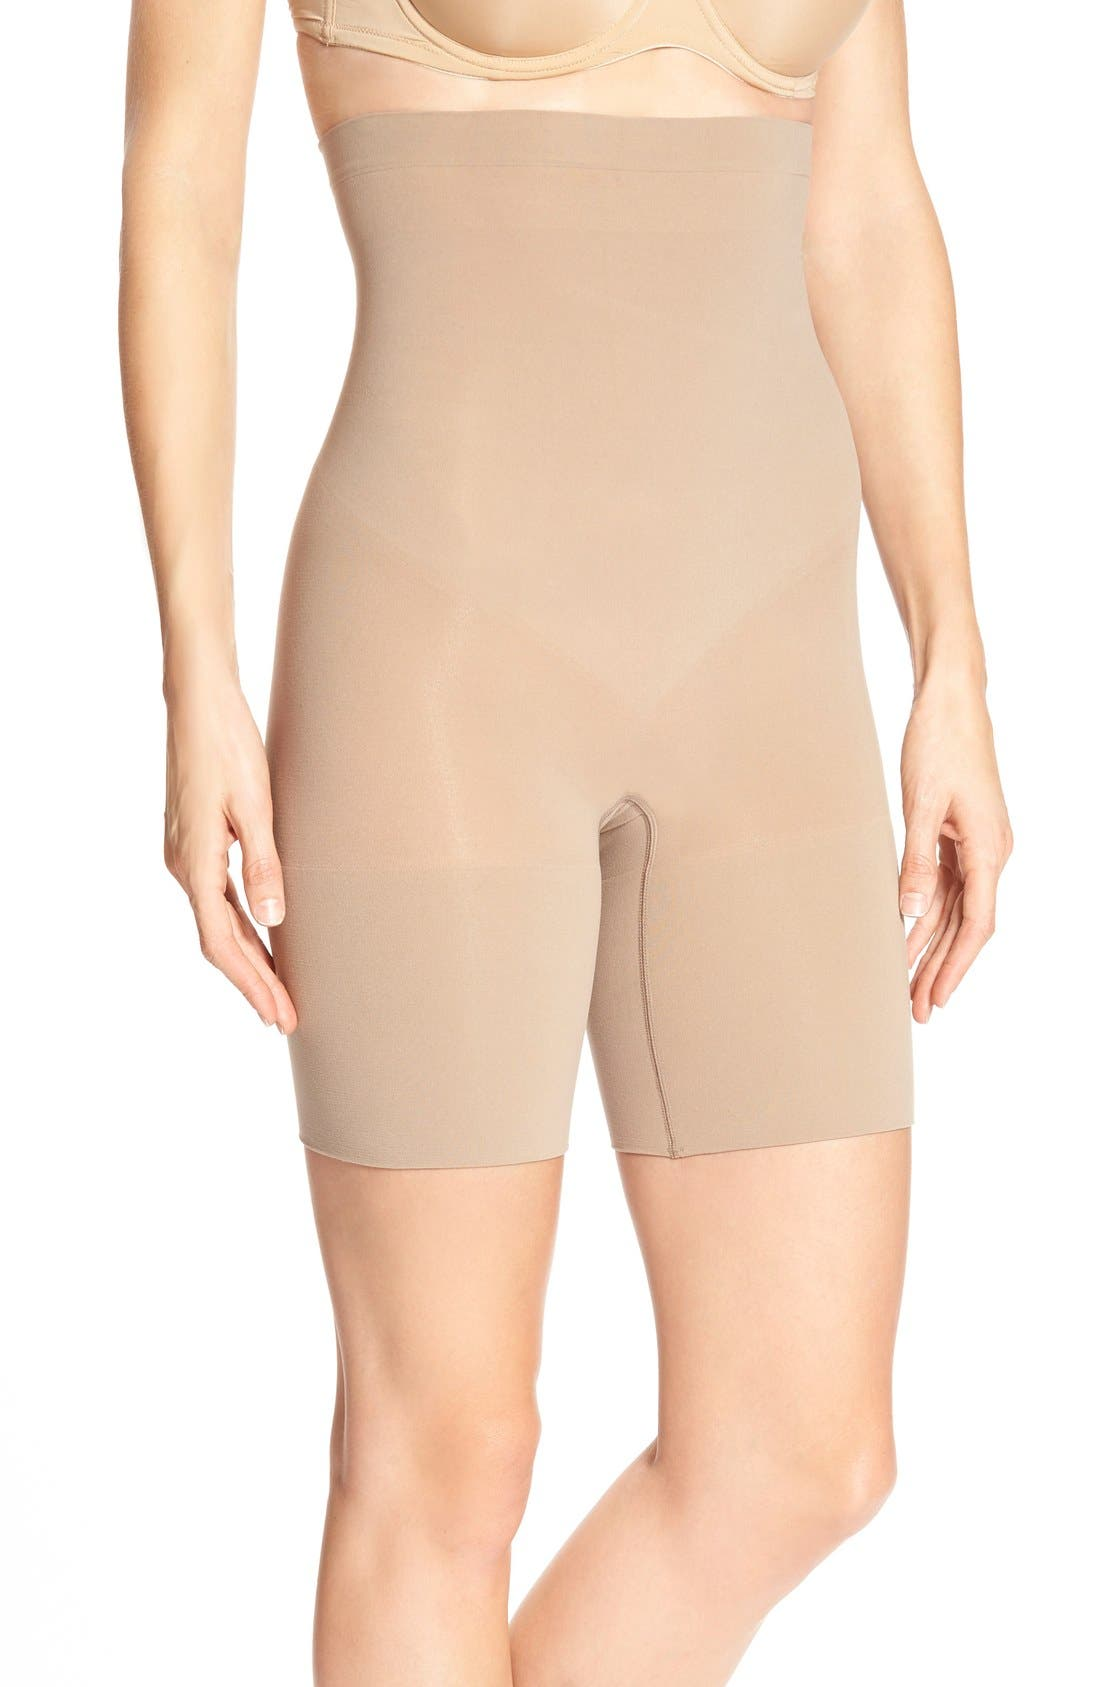 Main Image - SPANX® Higher Power Mid-Thigh Shaping Shorts (Regular & Plus Size)